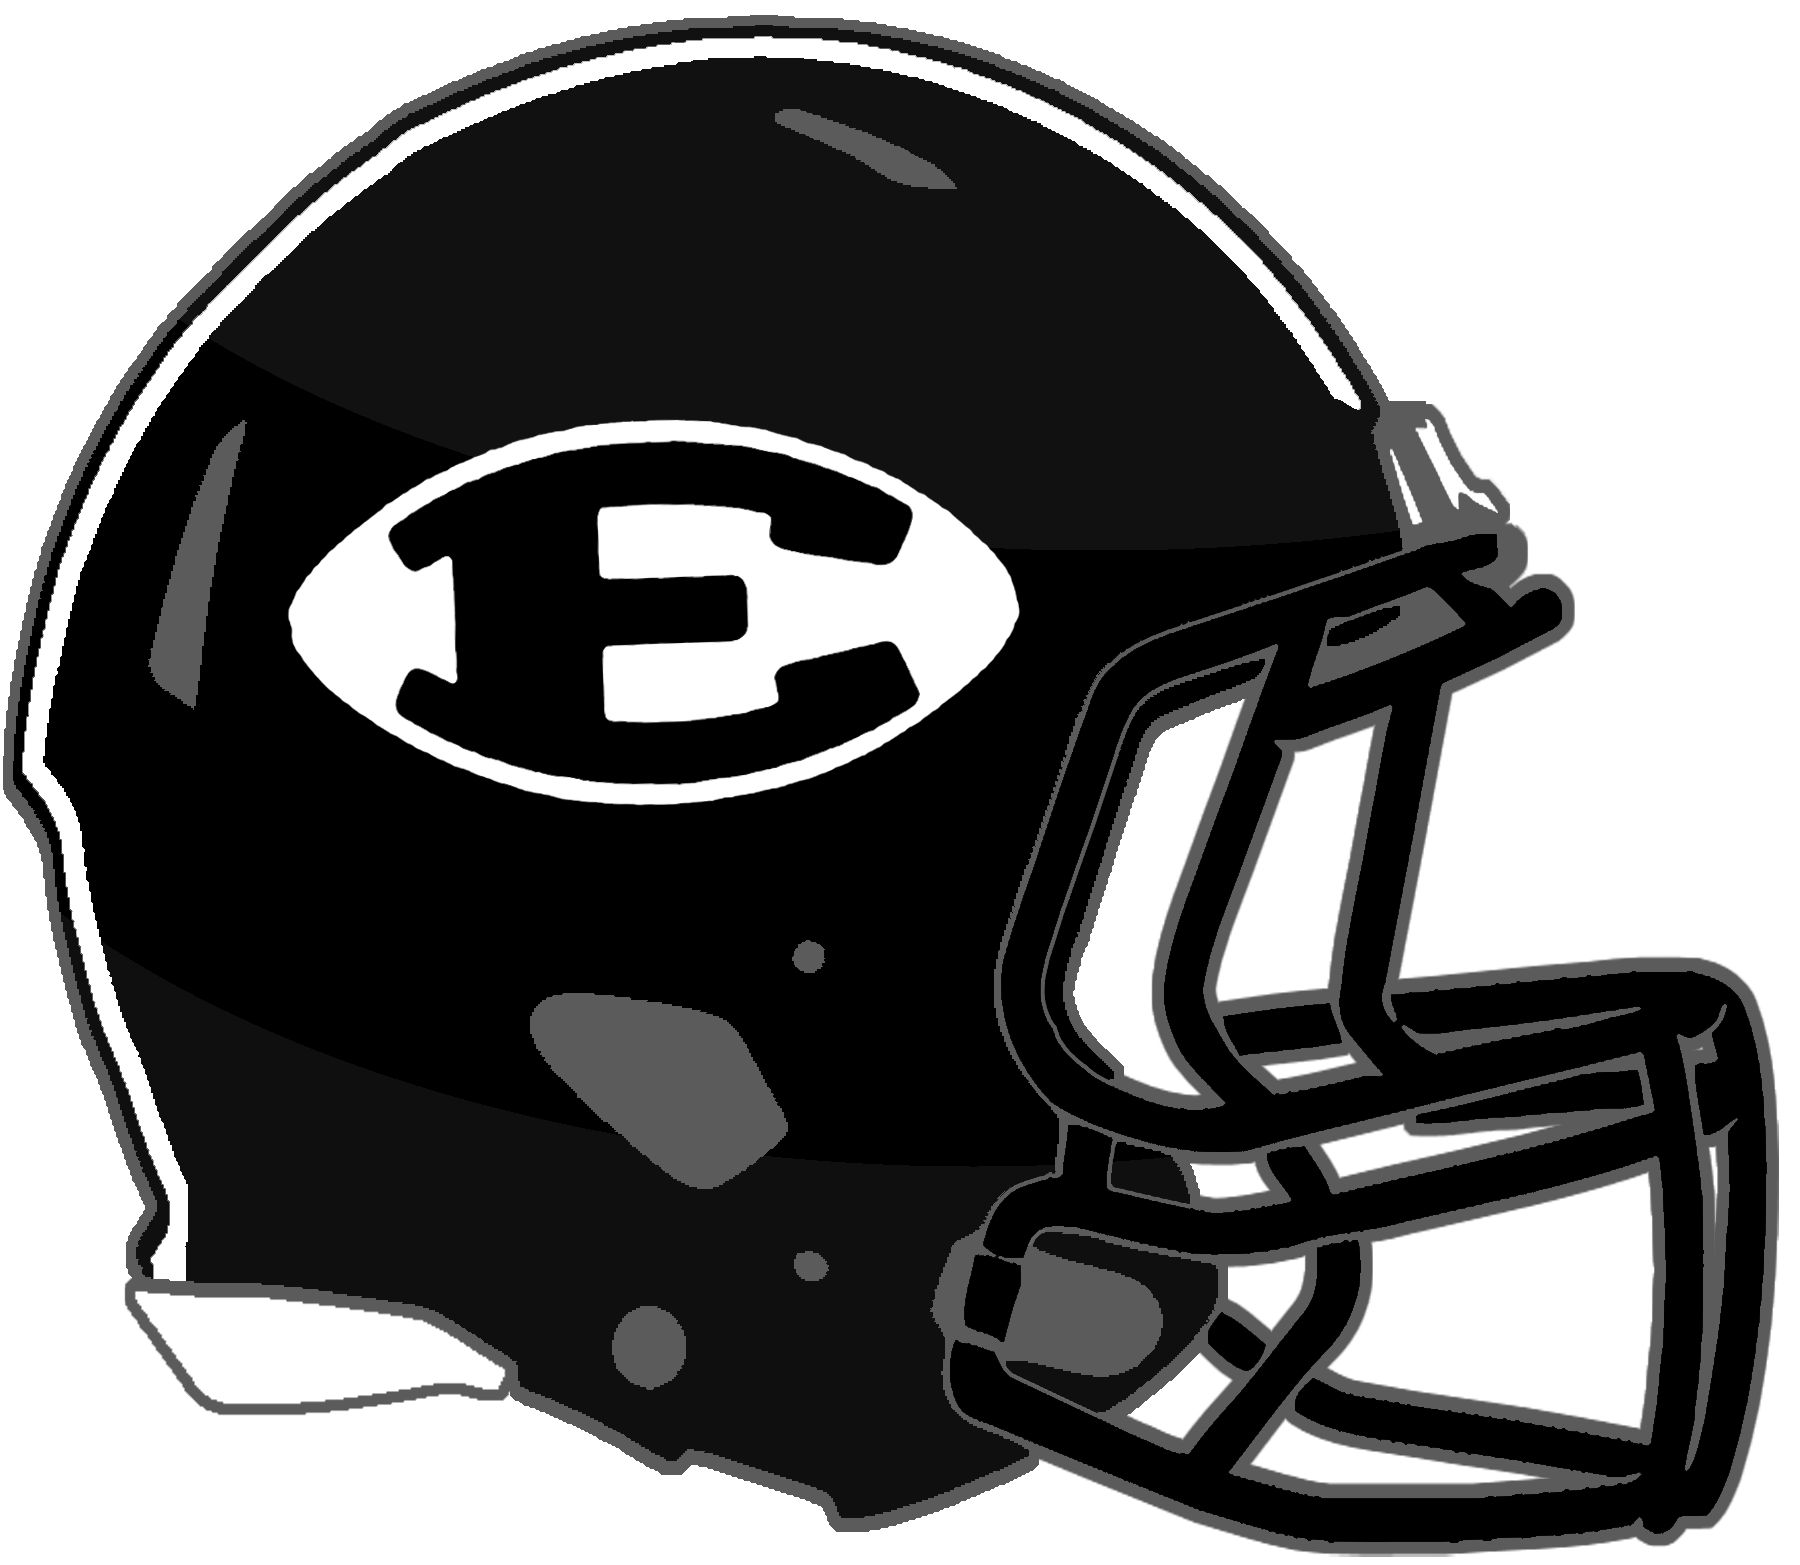 Mississippi High School Football Helmets: 2A picture transparent download